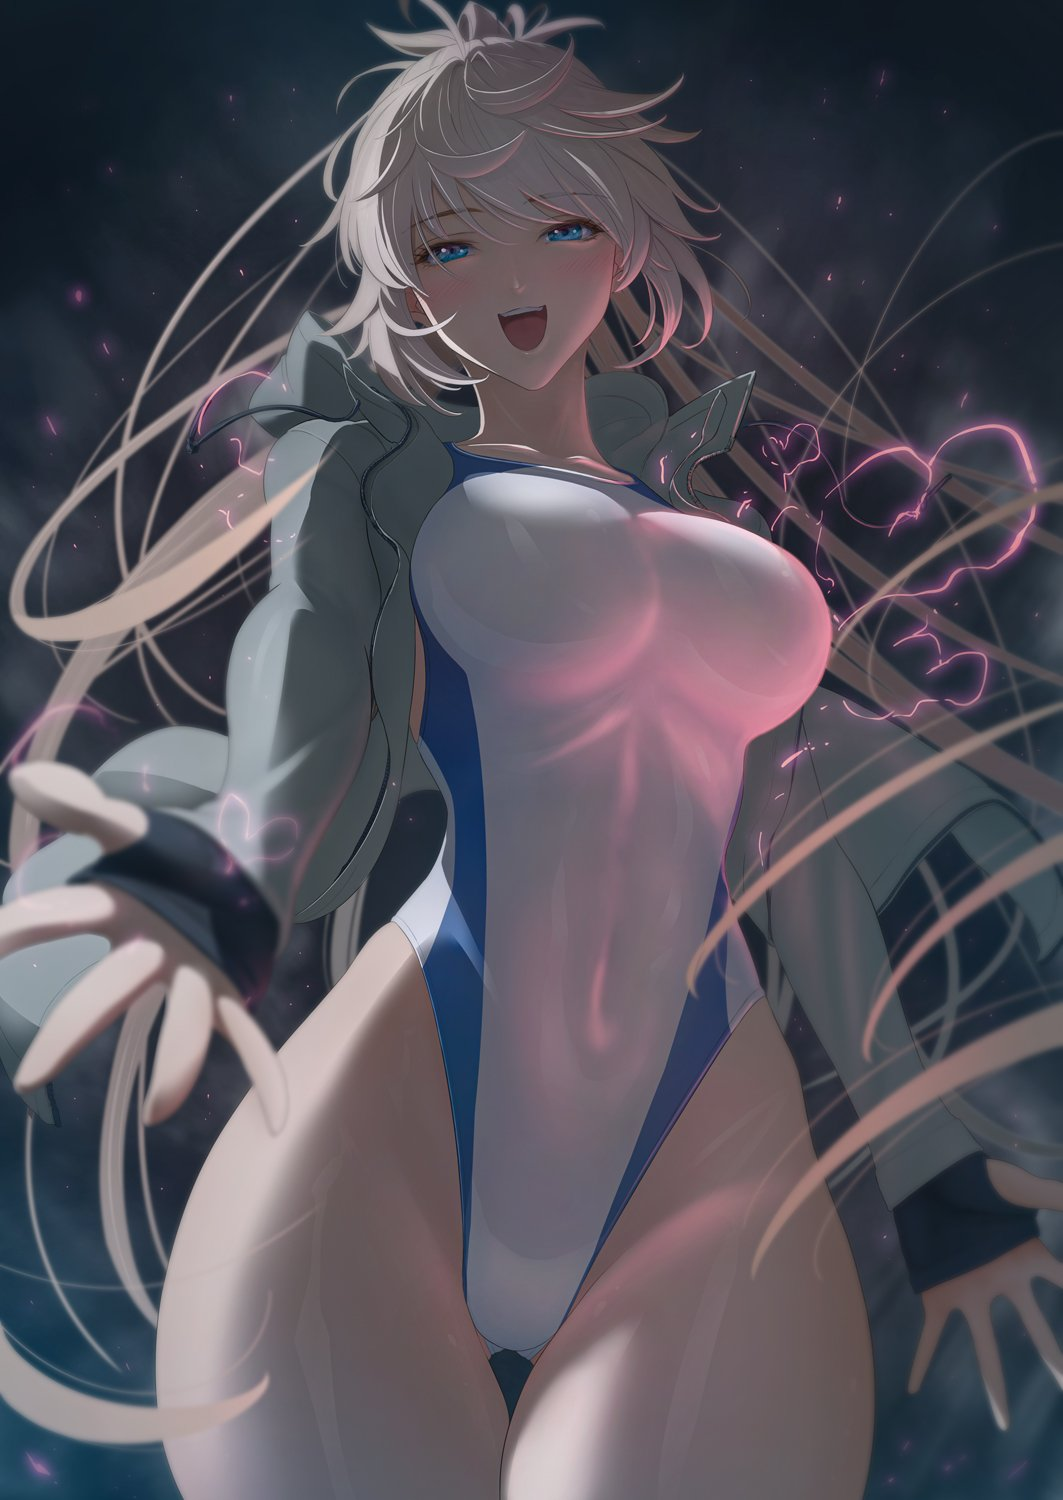 1girl :d bangs blue_eyes blue_swimsuit blush breasts competition_swimsuit cowboy_shot fate/grand_order fate_(series) floating_hair gloves grey_hair half-closed_eyes highleg highleg_swimsuit highres imizu_(nitro_unknown) jacket large_breasts lightning long_hair looking_at_viewer miyamoto_musashi_(fate/grand_order) miyamoto_musashi_(swimsuit_berserker)_(fate) one-piece_swimsuit open_clothes open_jacket open_mouth smile solo swept_bangs swimsuit tareme white_swimsuit